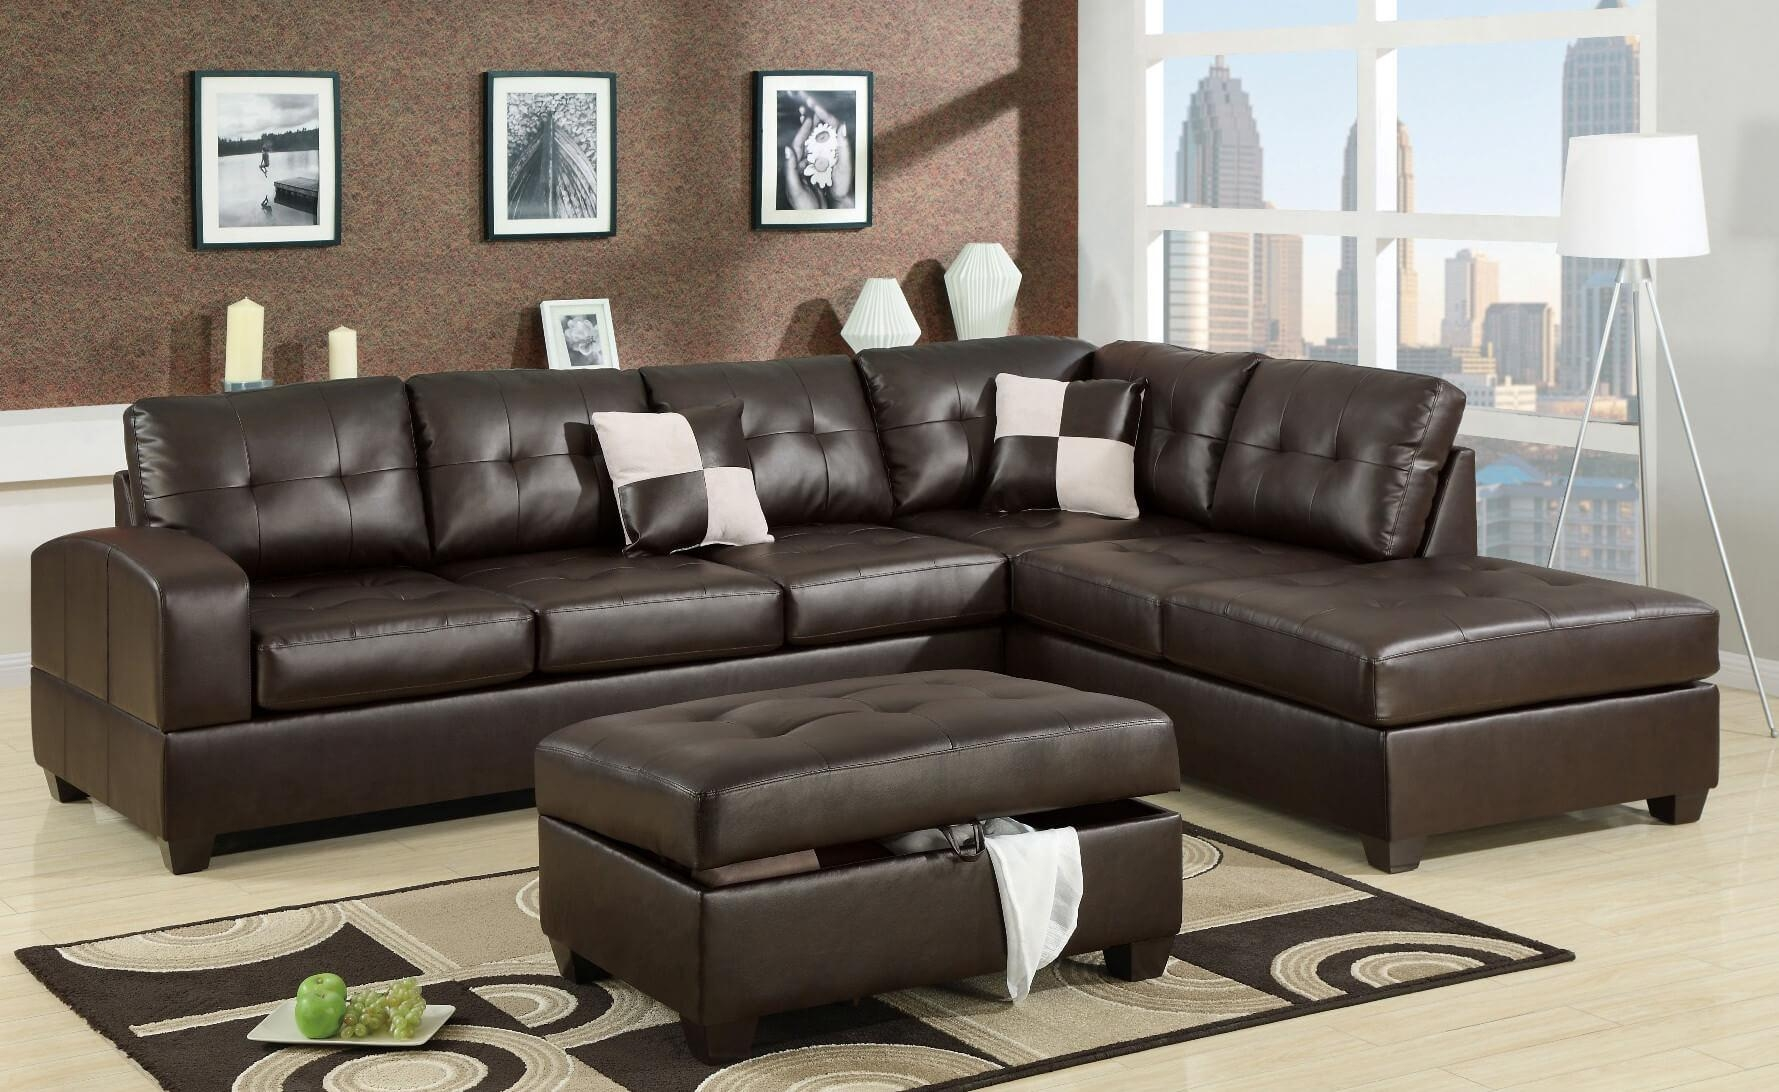 Epic Eco Friendly Sectional Sofa 43 On Stendmar Sectional Sofa With Regard To Eco Friendly Sectional Sofa (Image 6 of 15)